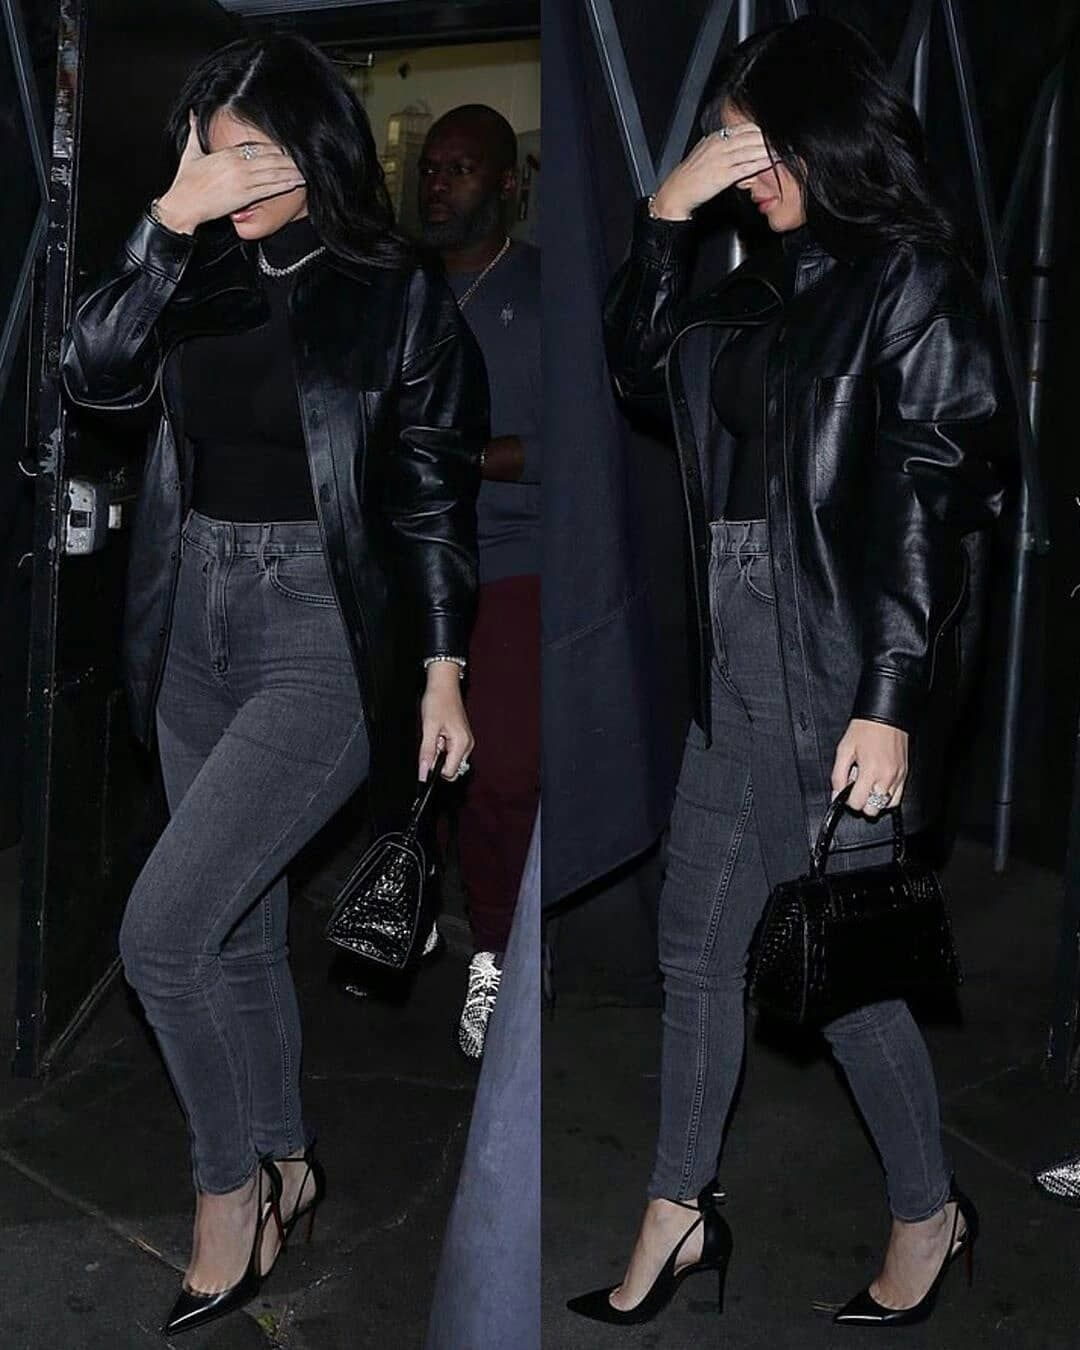 Kylie Jenner Fan Page Sto Instagram Kylie On Tuesday Night Next To Coney Kyliejenner Travisscott Sto Fashion Kylie Jenner Style Kylie Jenner Outfits [ 1350 x 1080 Pixel ]